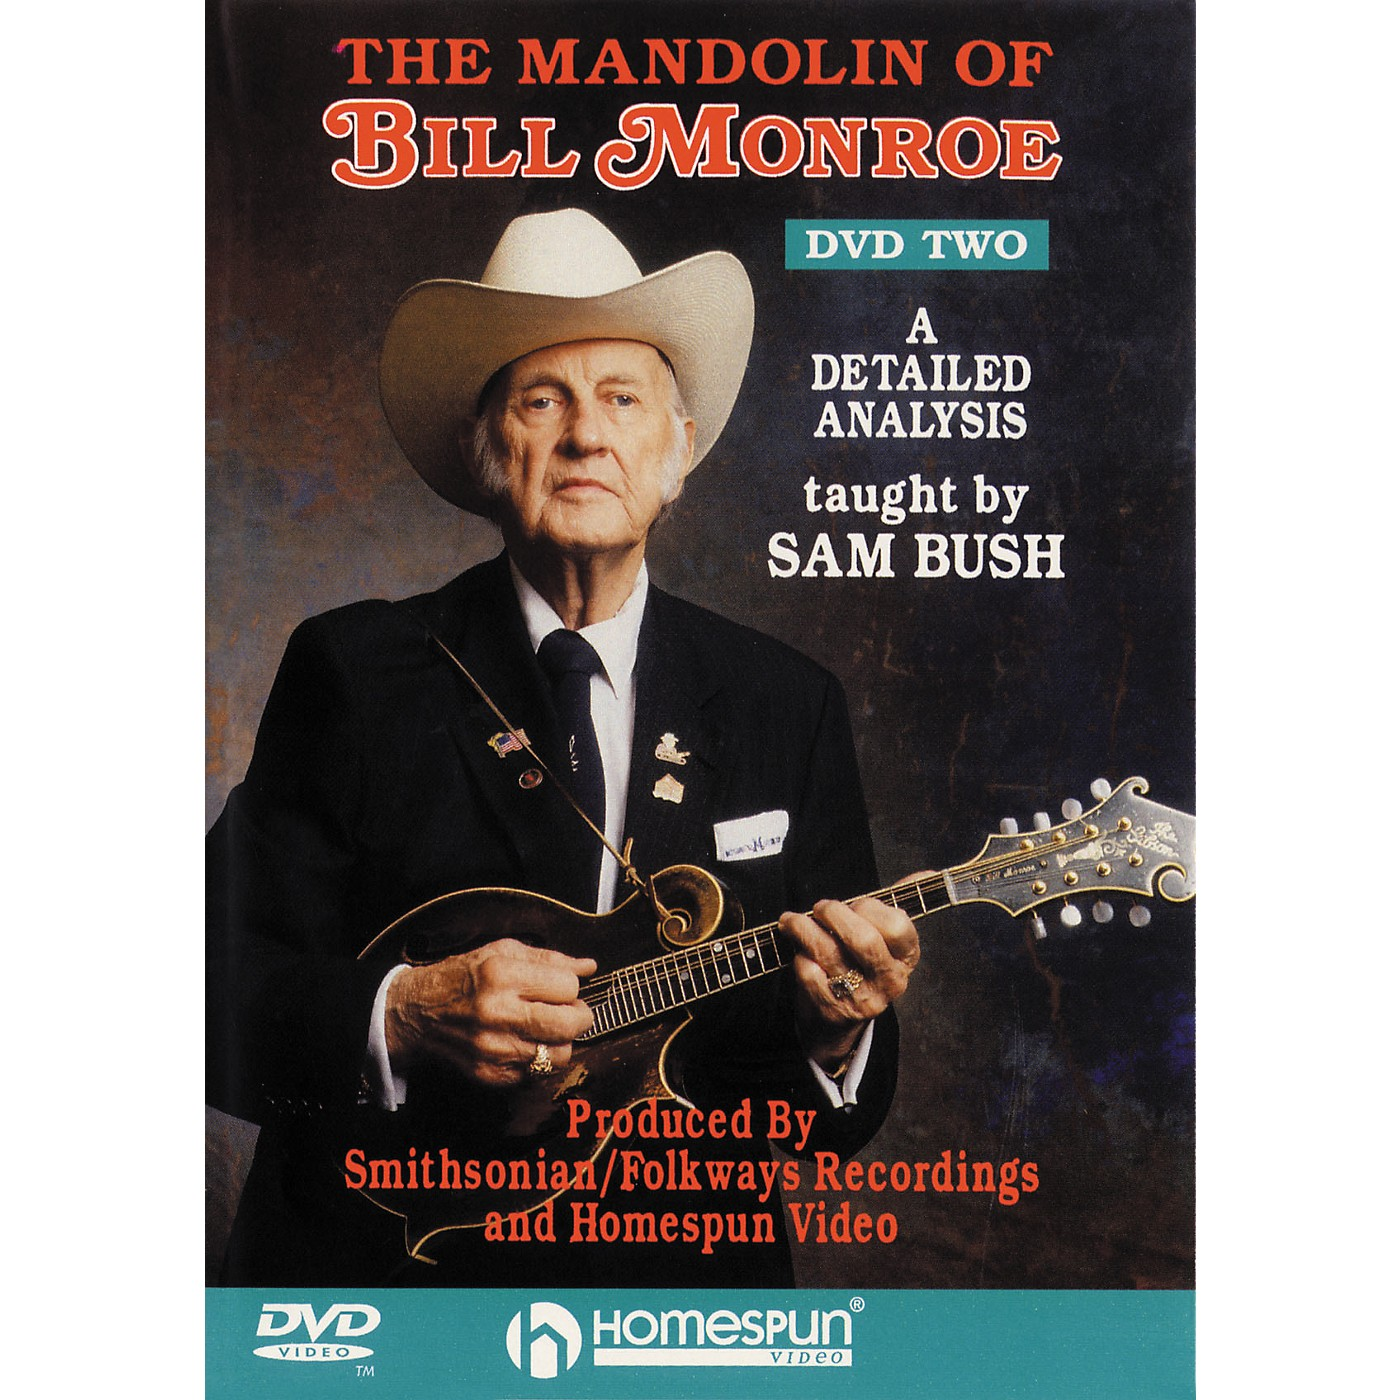 Homespun The Mandolin of Bill Monroe 2 (DVD) thumbnail